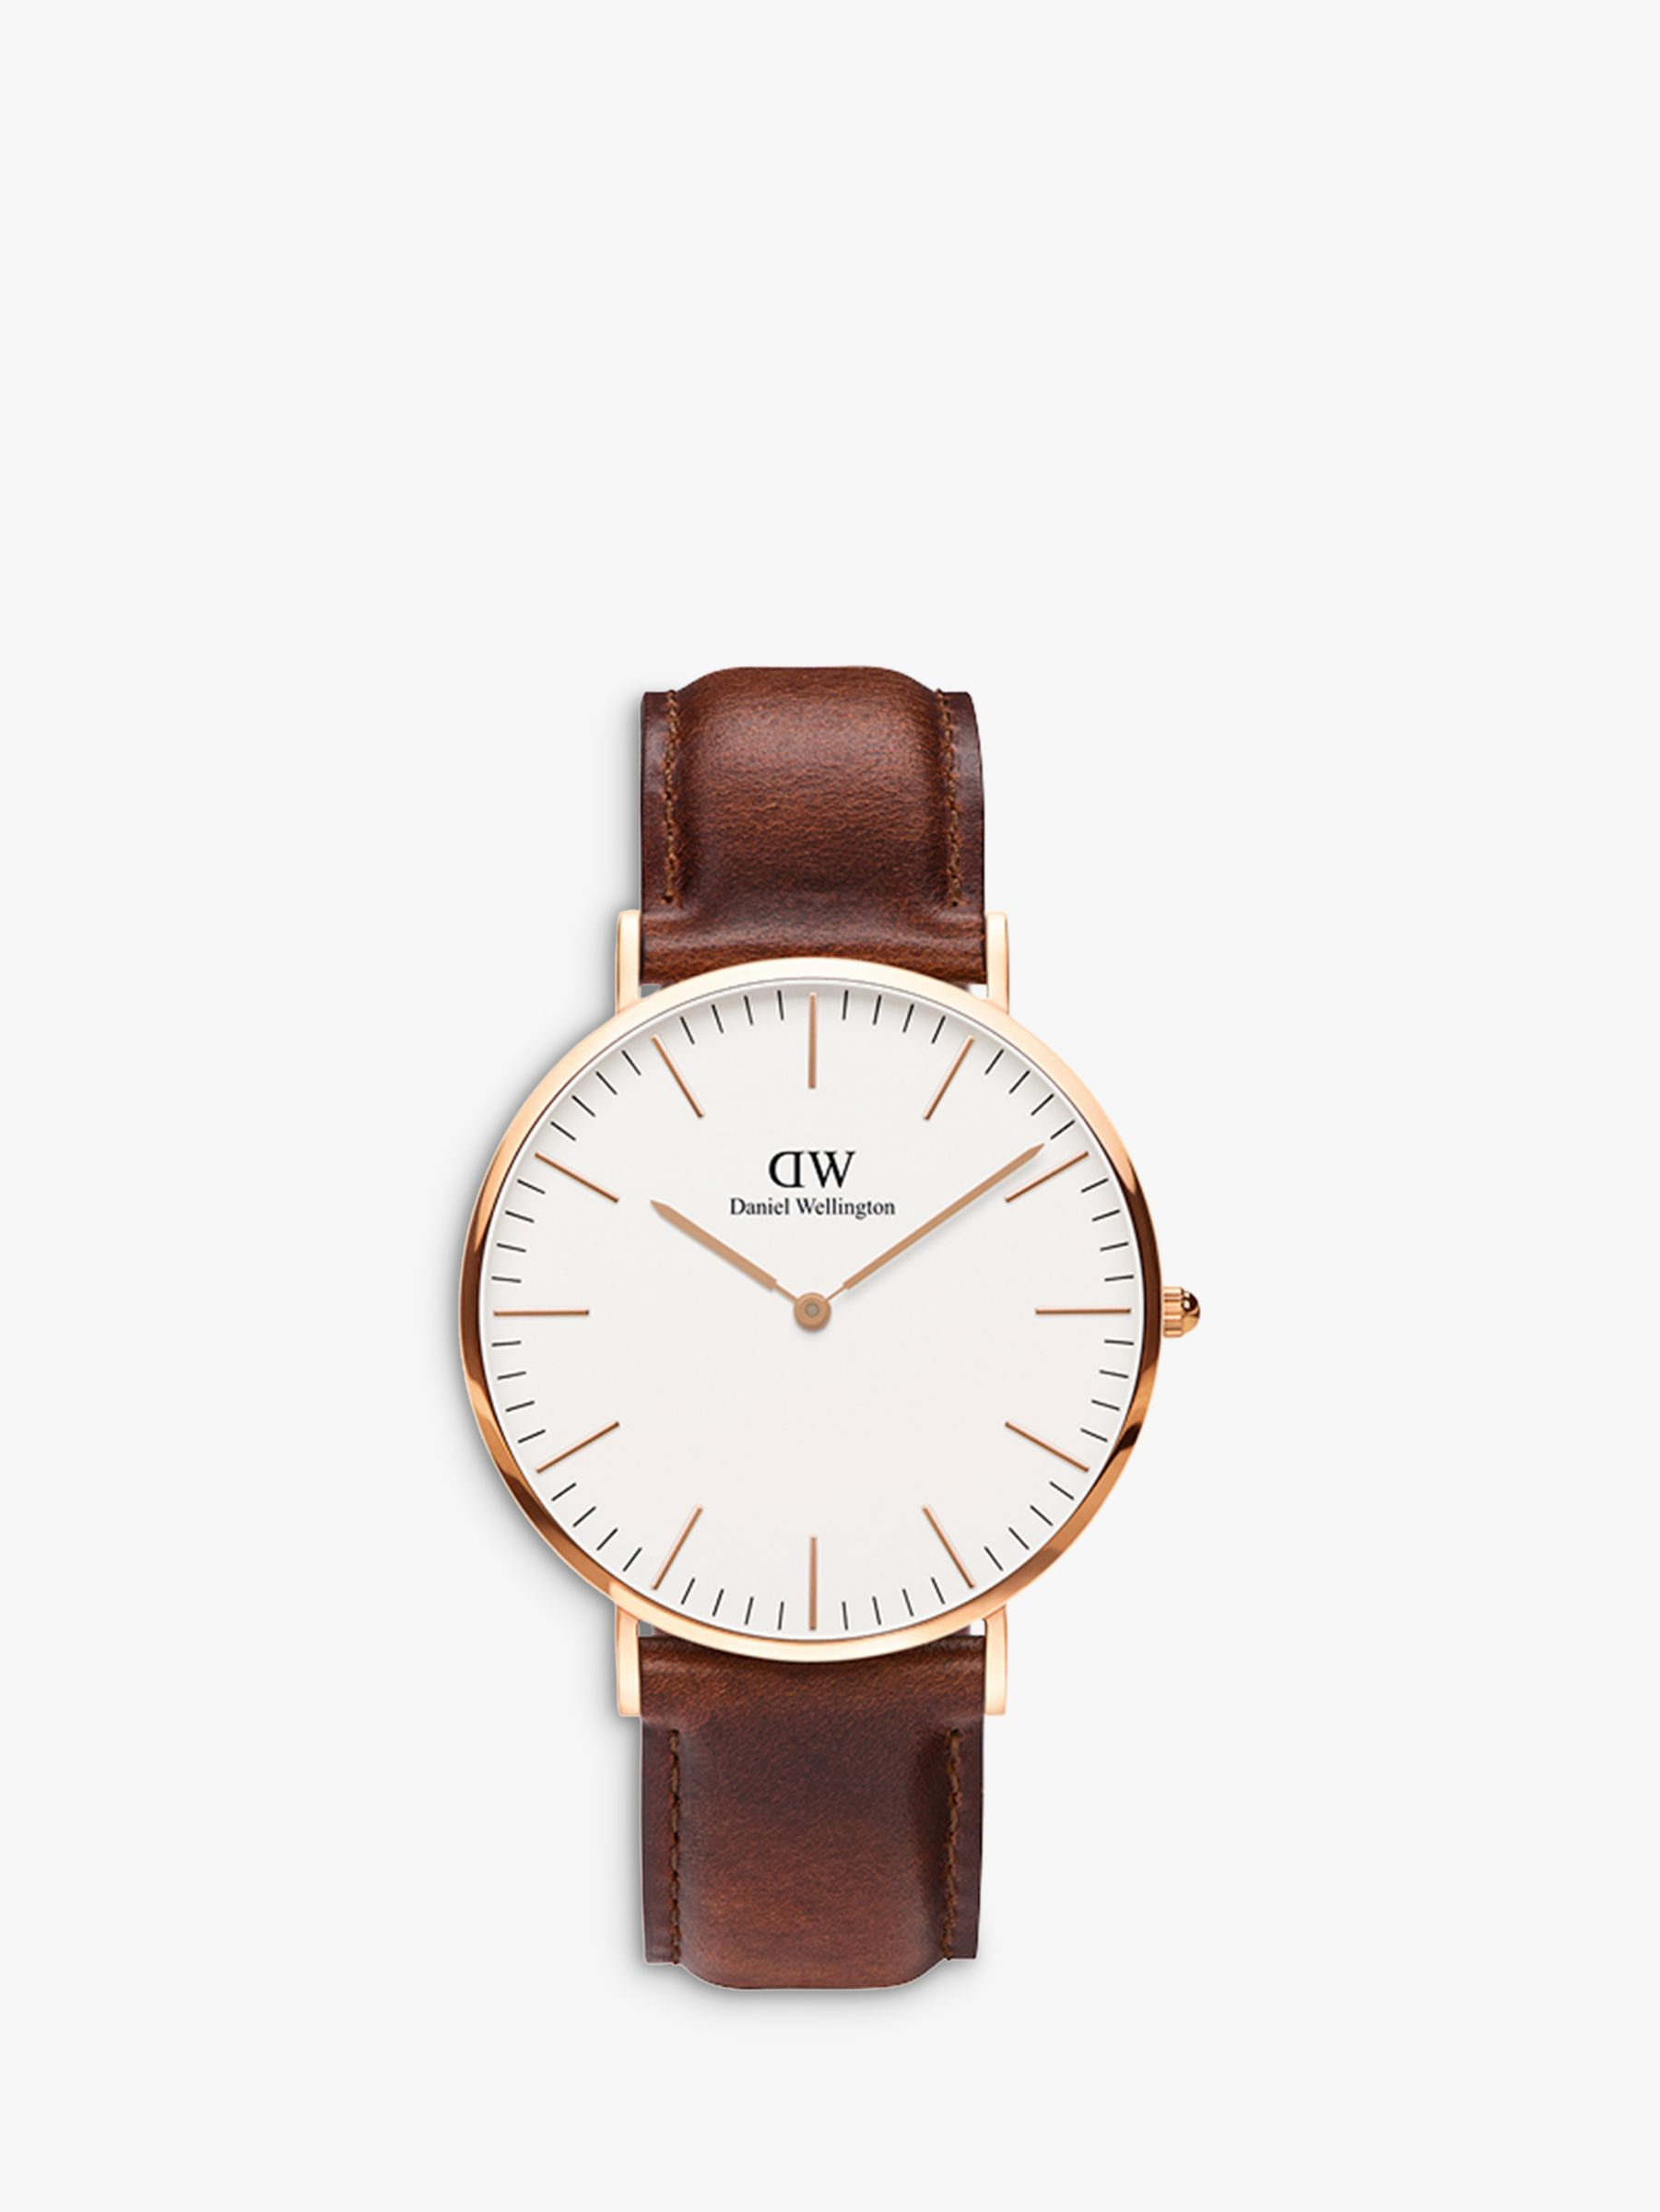 Daniel Wellington Daniel Wellington DW00100006 Men's 40mm St Mawes Rose Gold Plated Leather Strap Watch, Tan/White